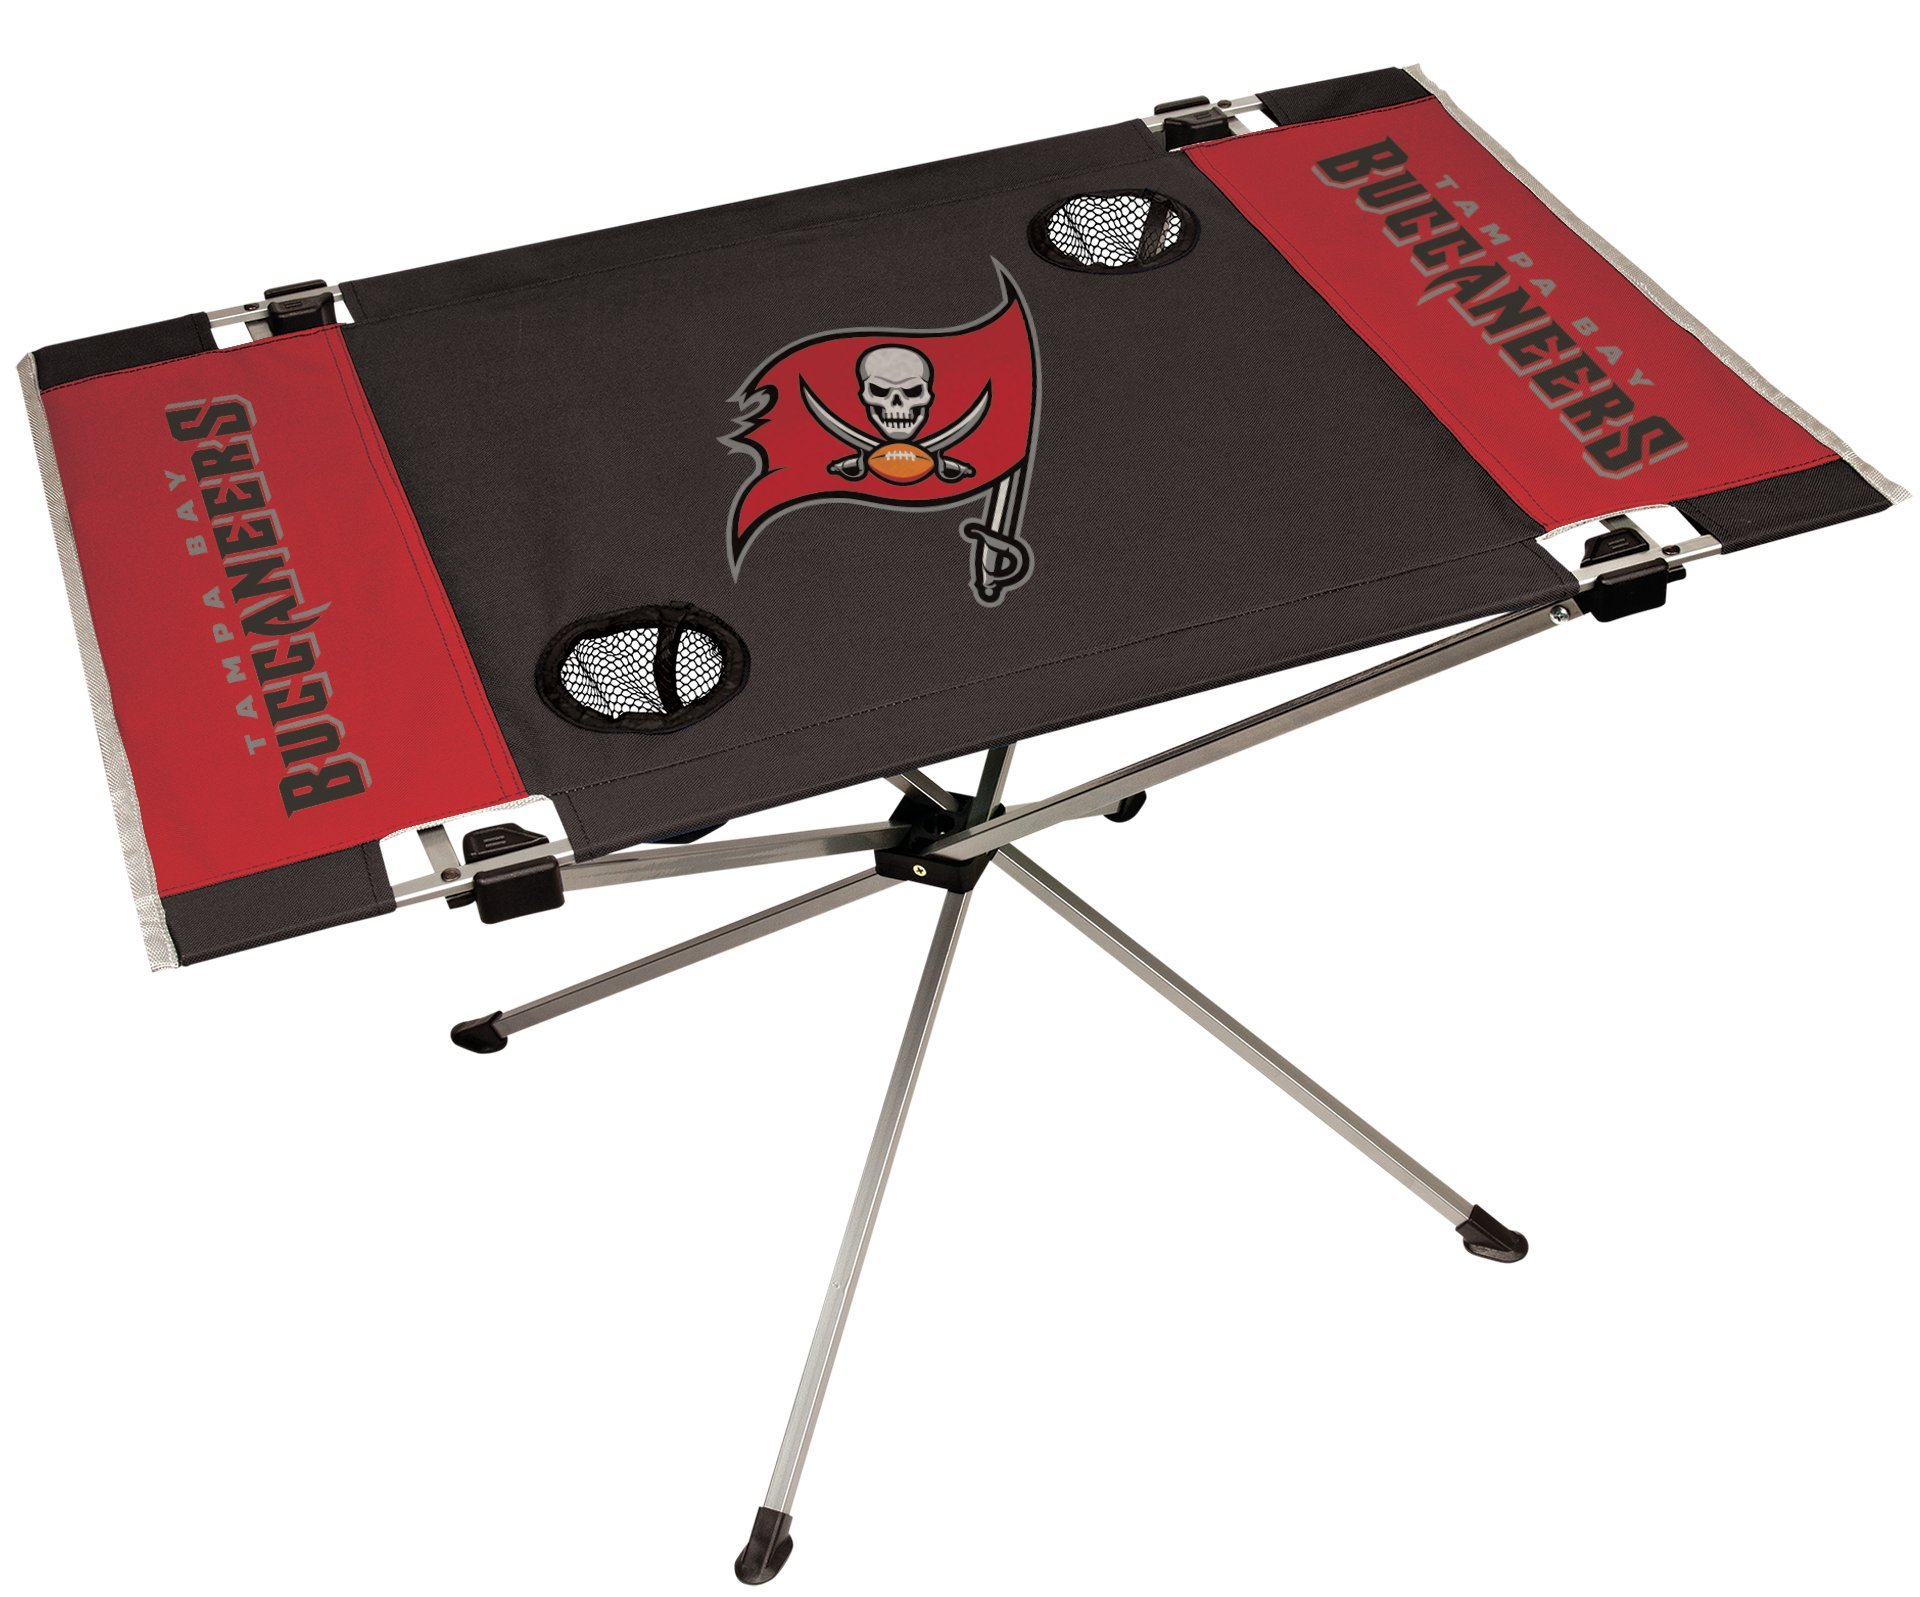 Rawlings NFL Portable Folding Endzone Table, 31.5 in x 20.7 in x 19 in by Rawlings